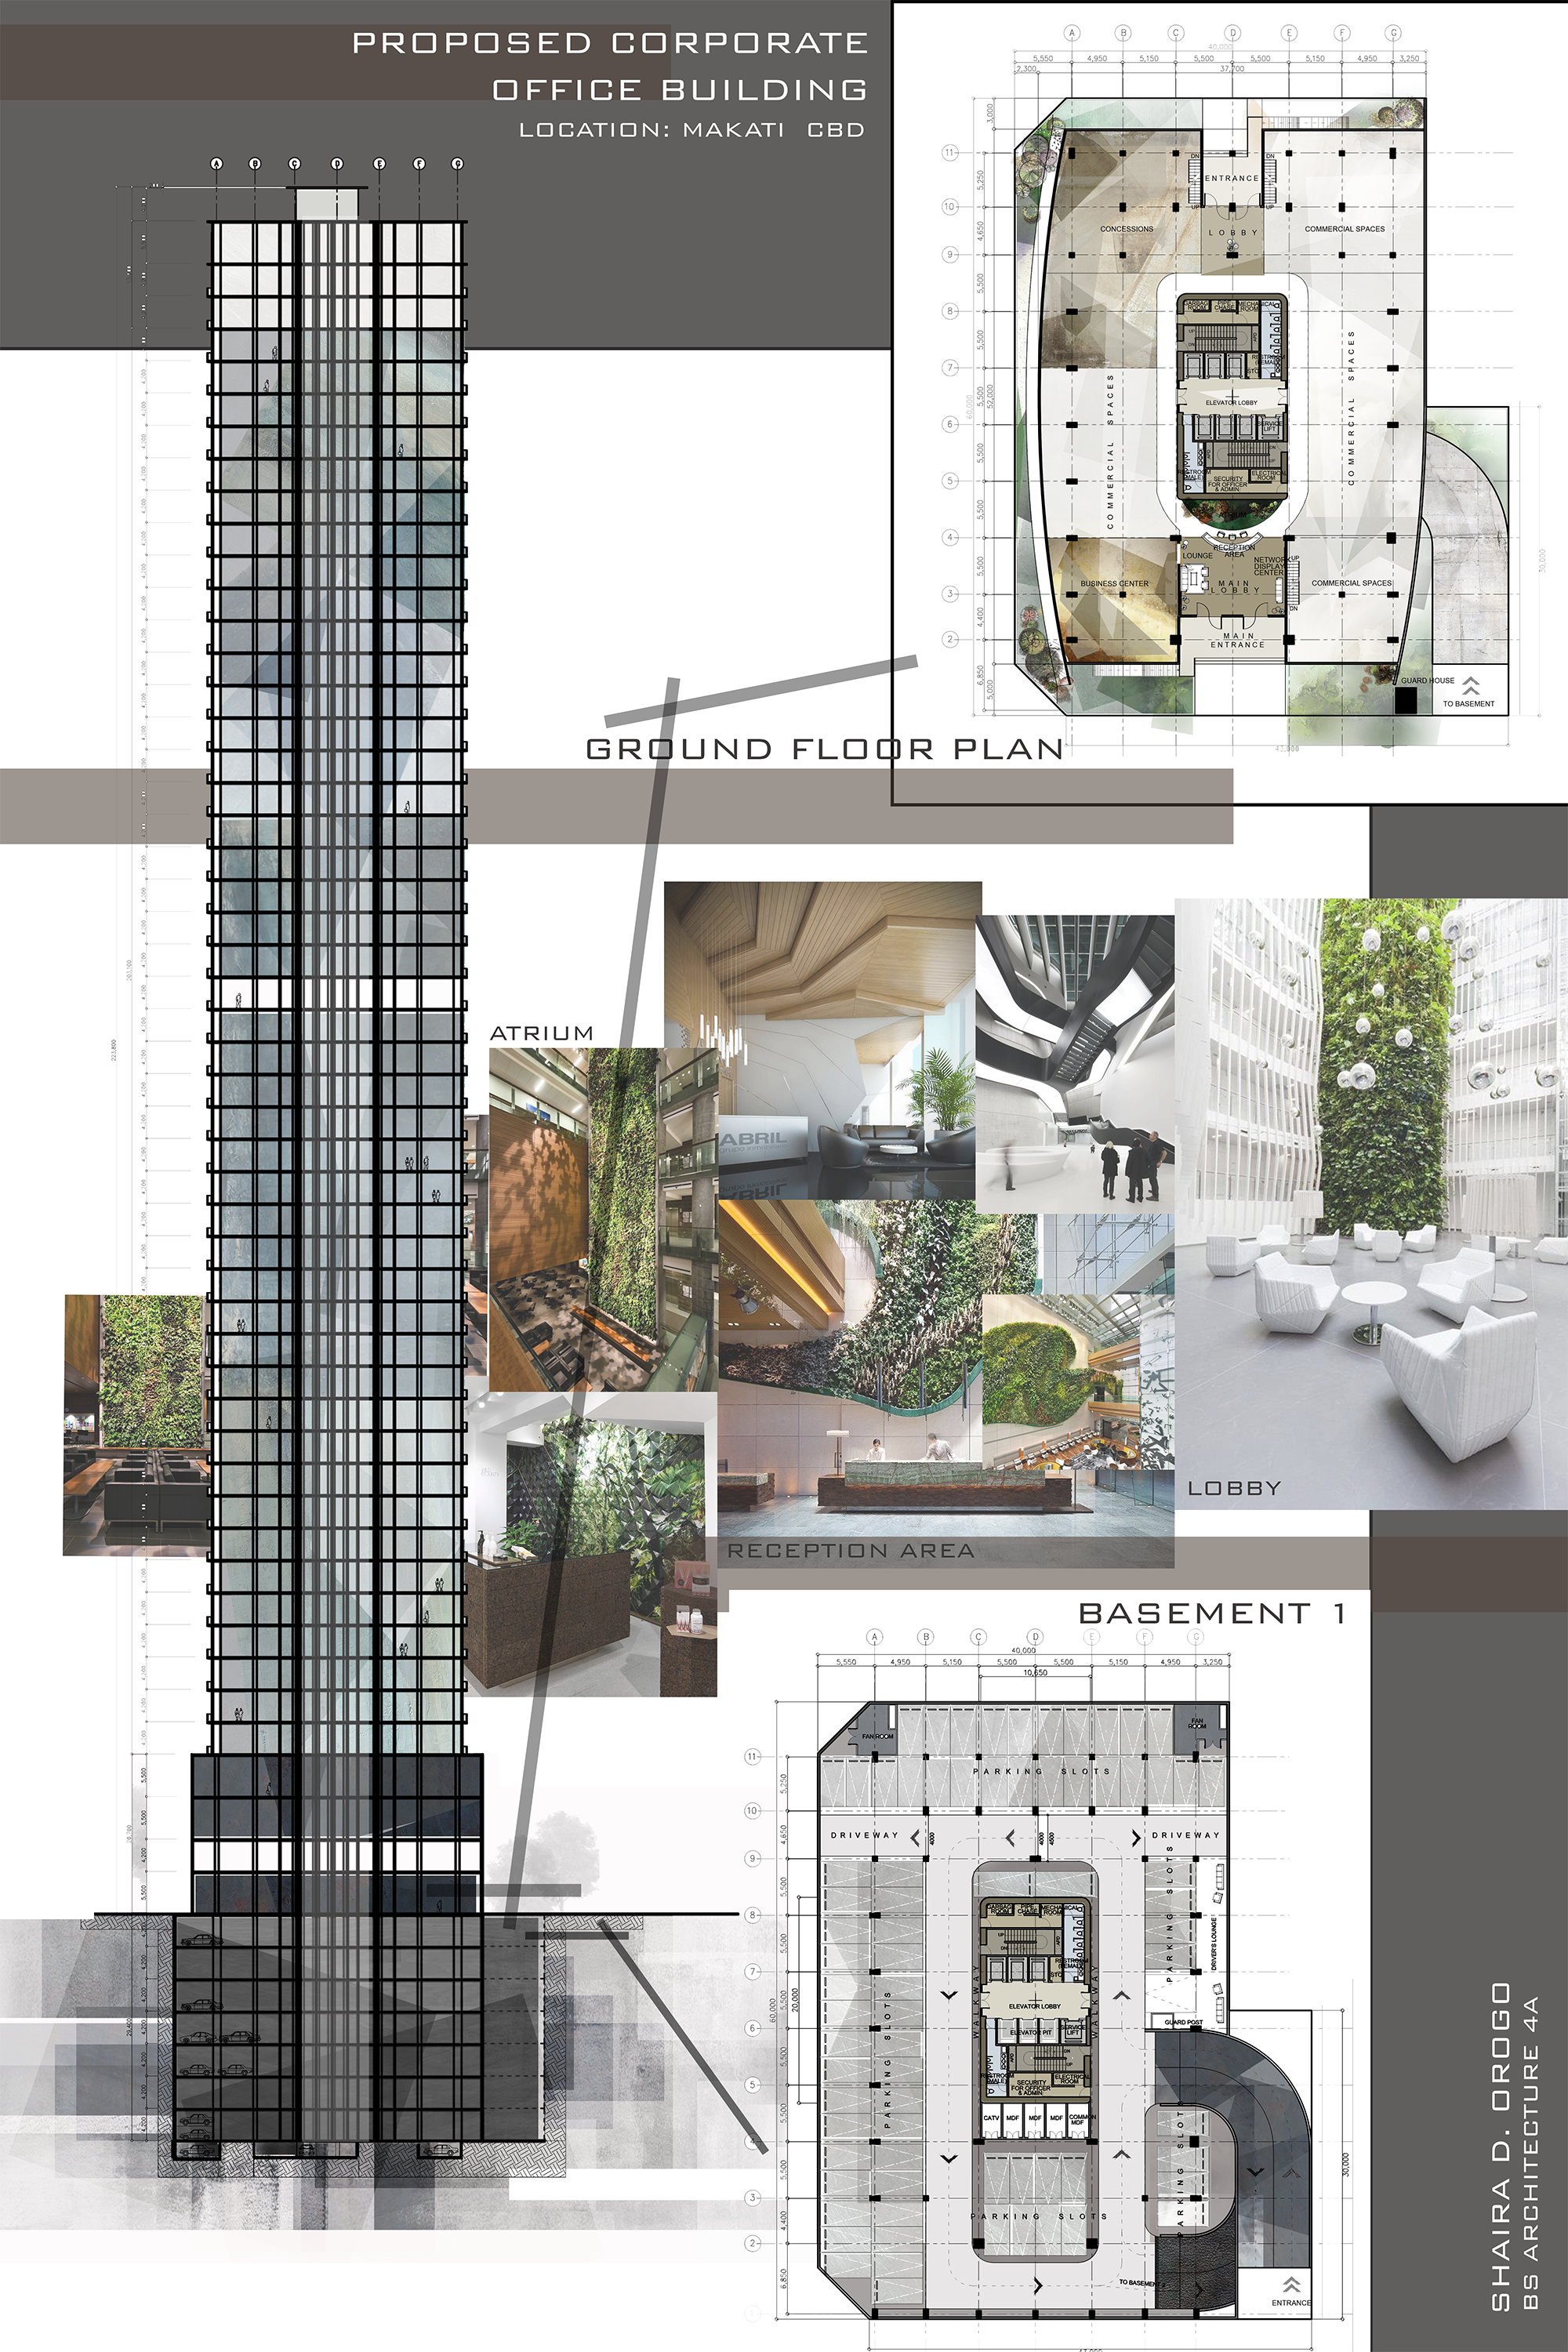 Design 8 / Proposed Corporate Office Building / High Rise Building /  Architectural Layouts /